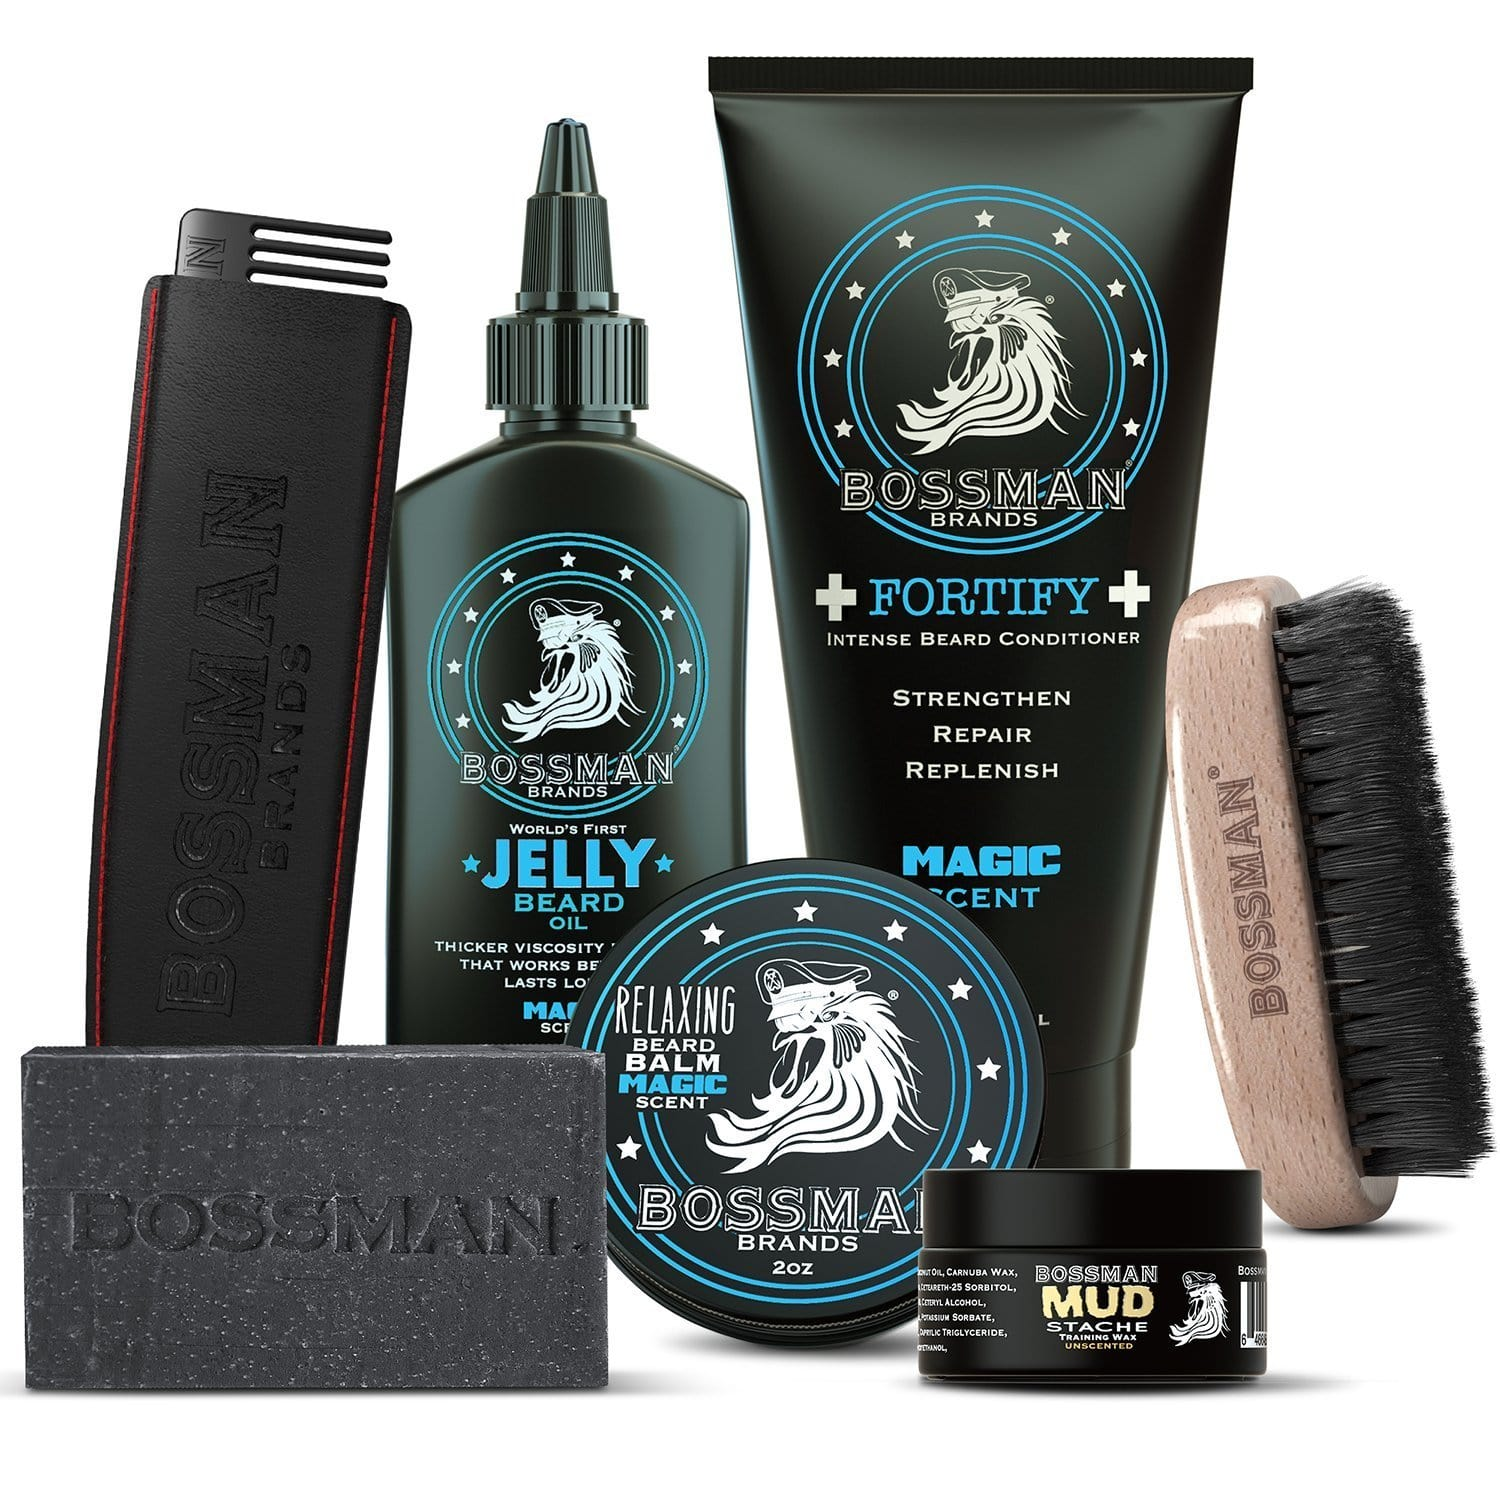 Bossman Big Boss Beard Care Kit - Magic Scent